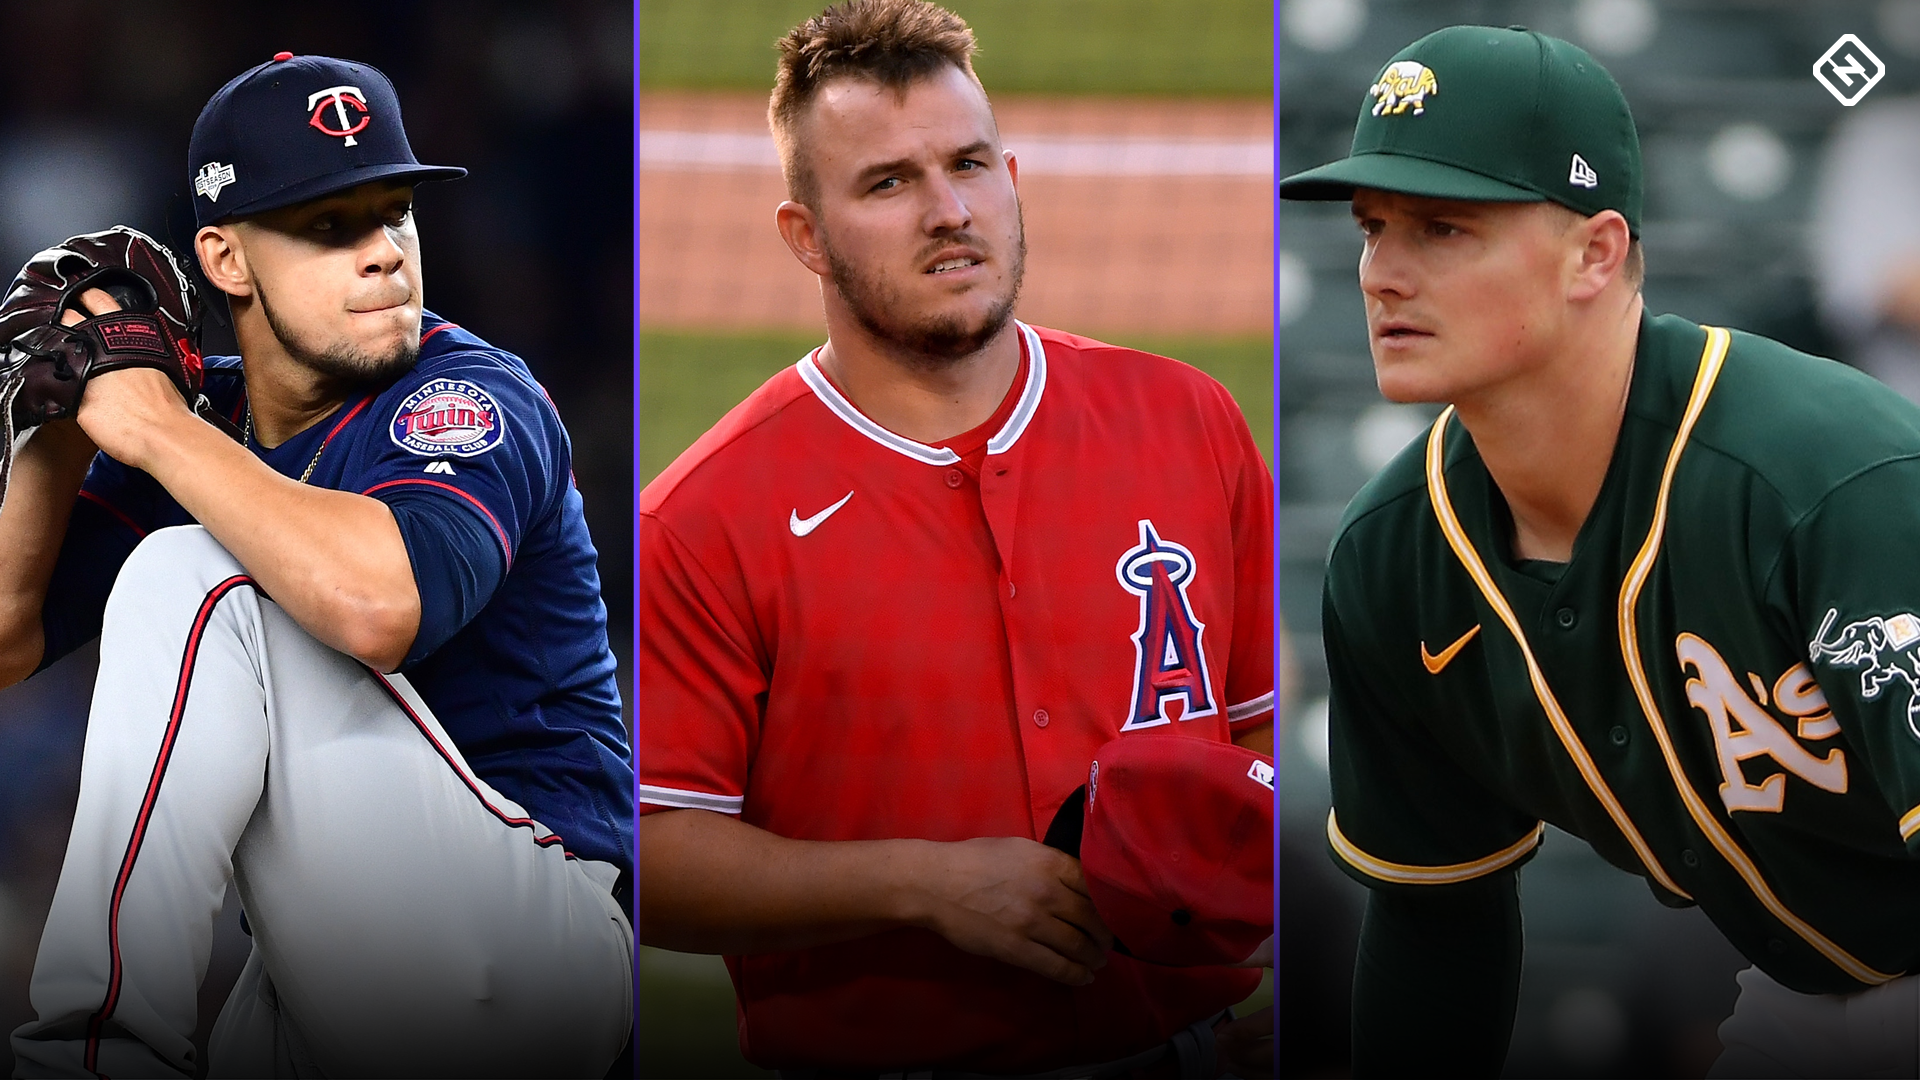 This Season in Baseball: The stars, storylines and stuff to watch in the 2020 MLB season